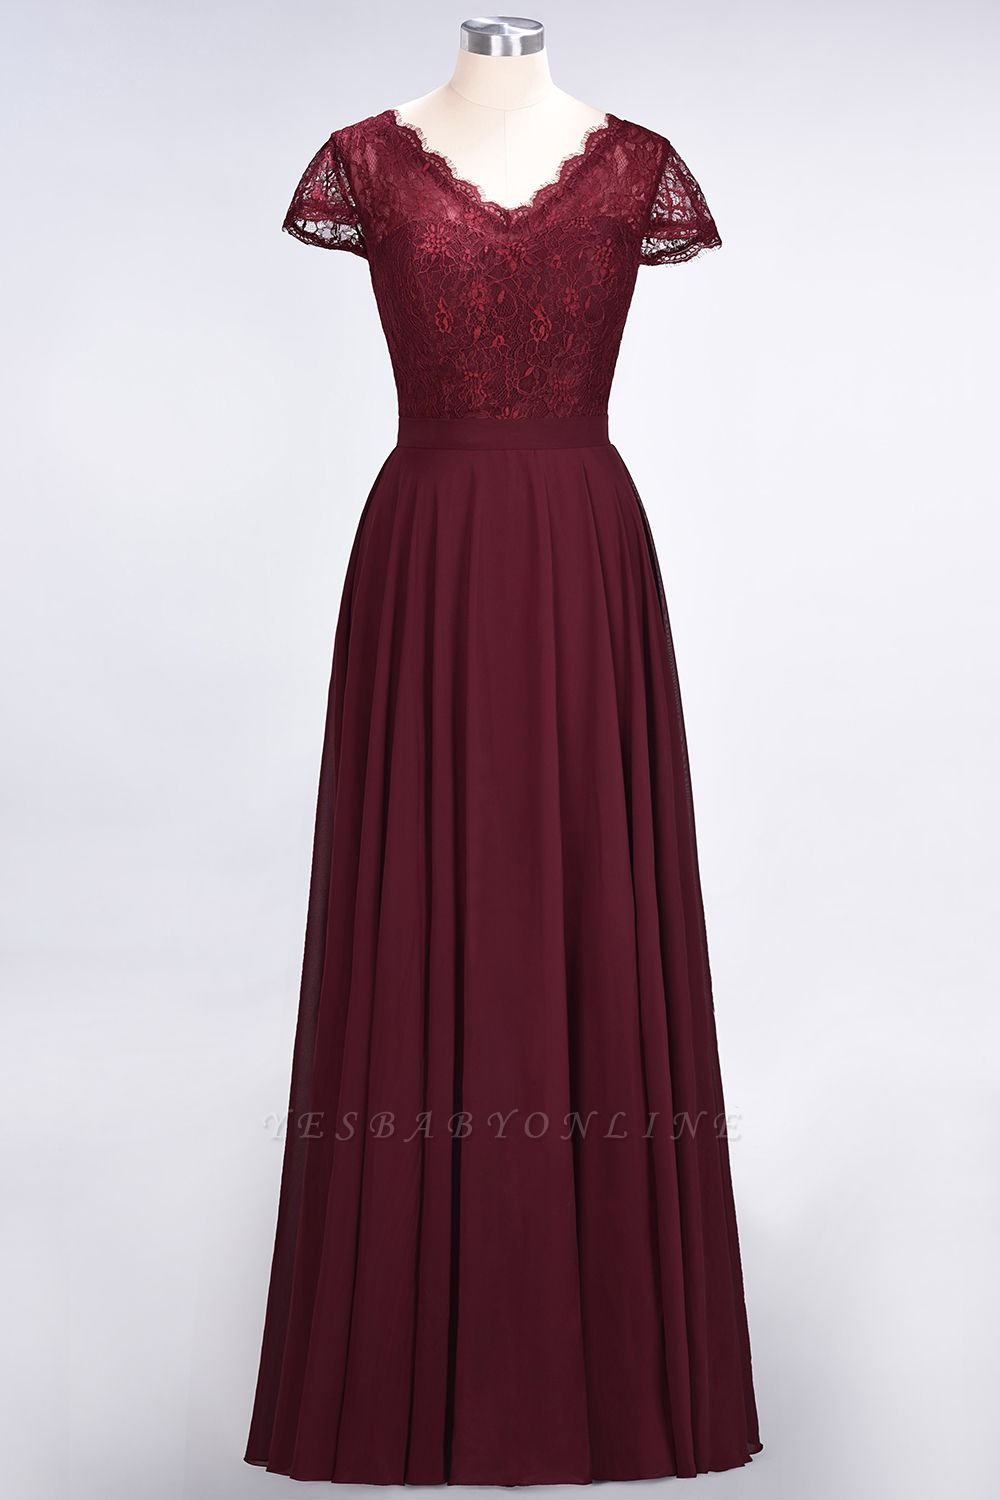 A-Line V-Neck Cap-Sleeves Floor-Length  Lace Bridesmaid Dress